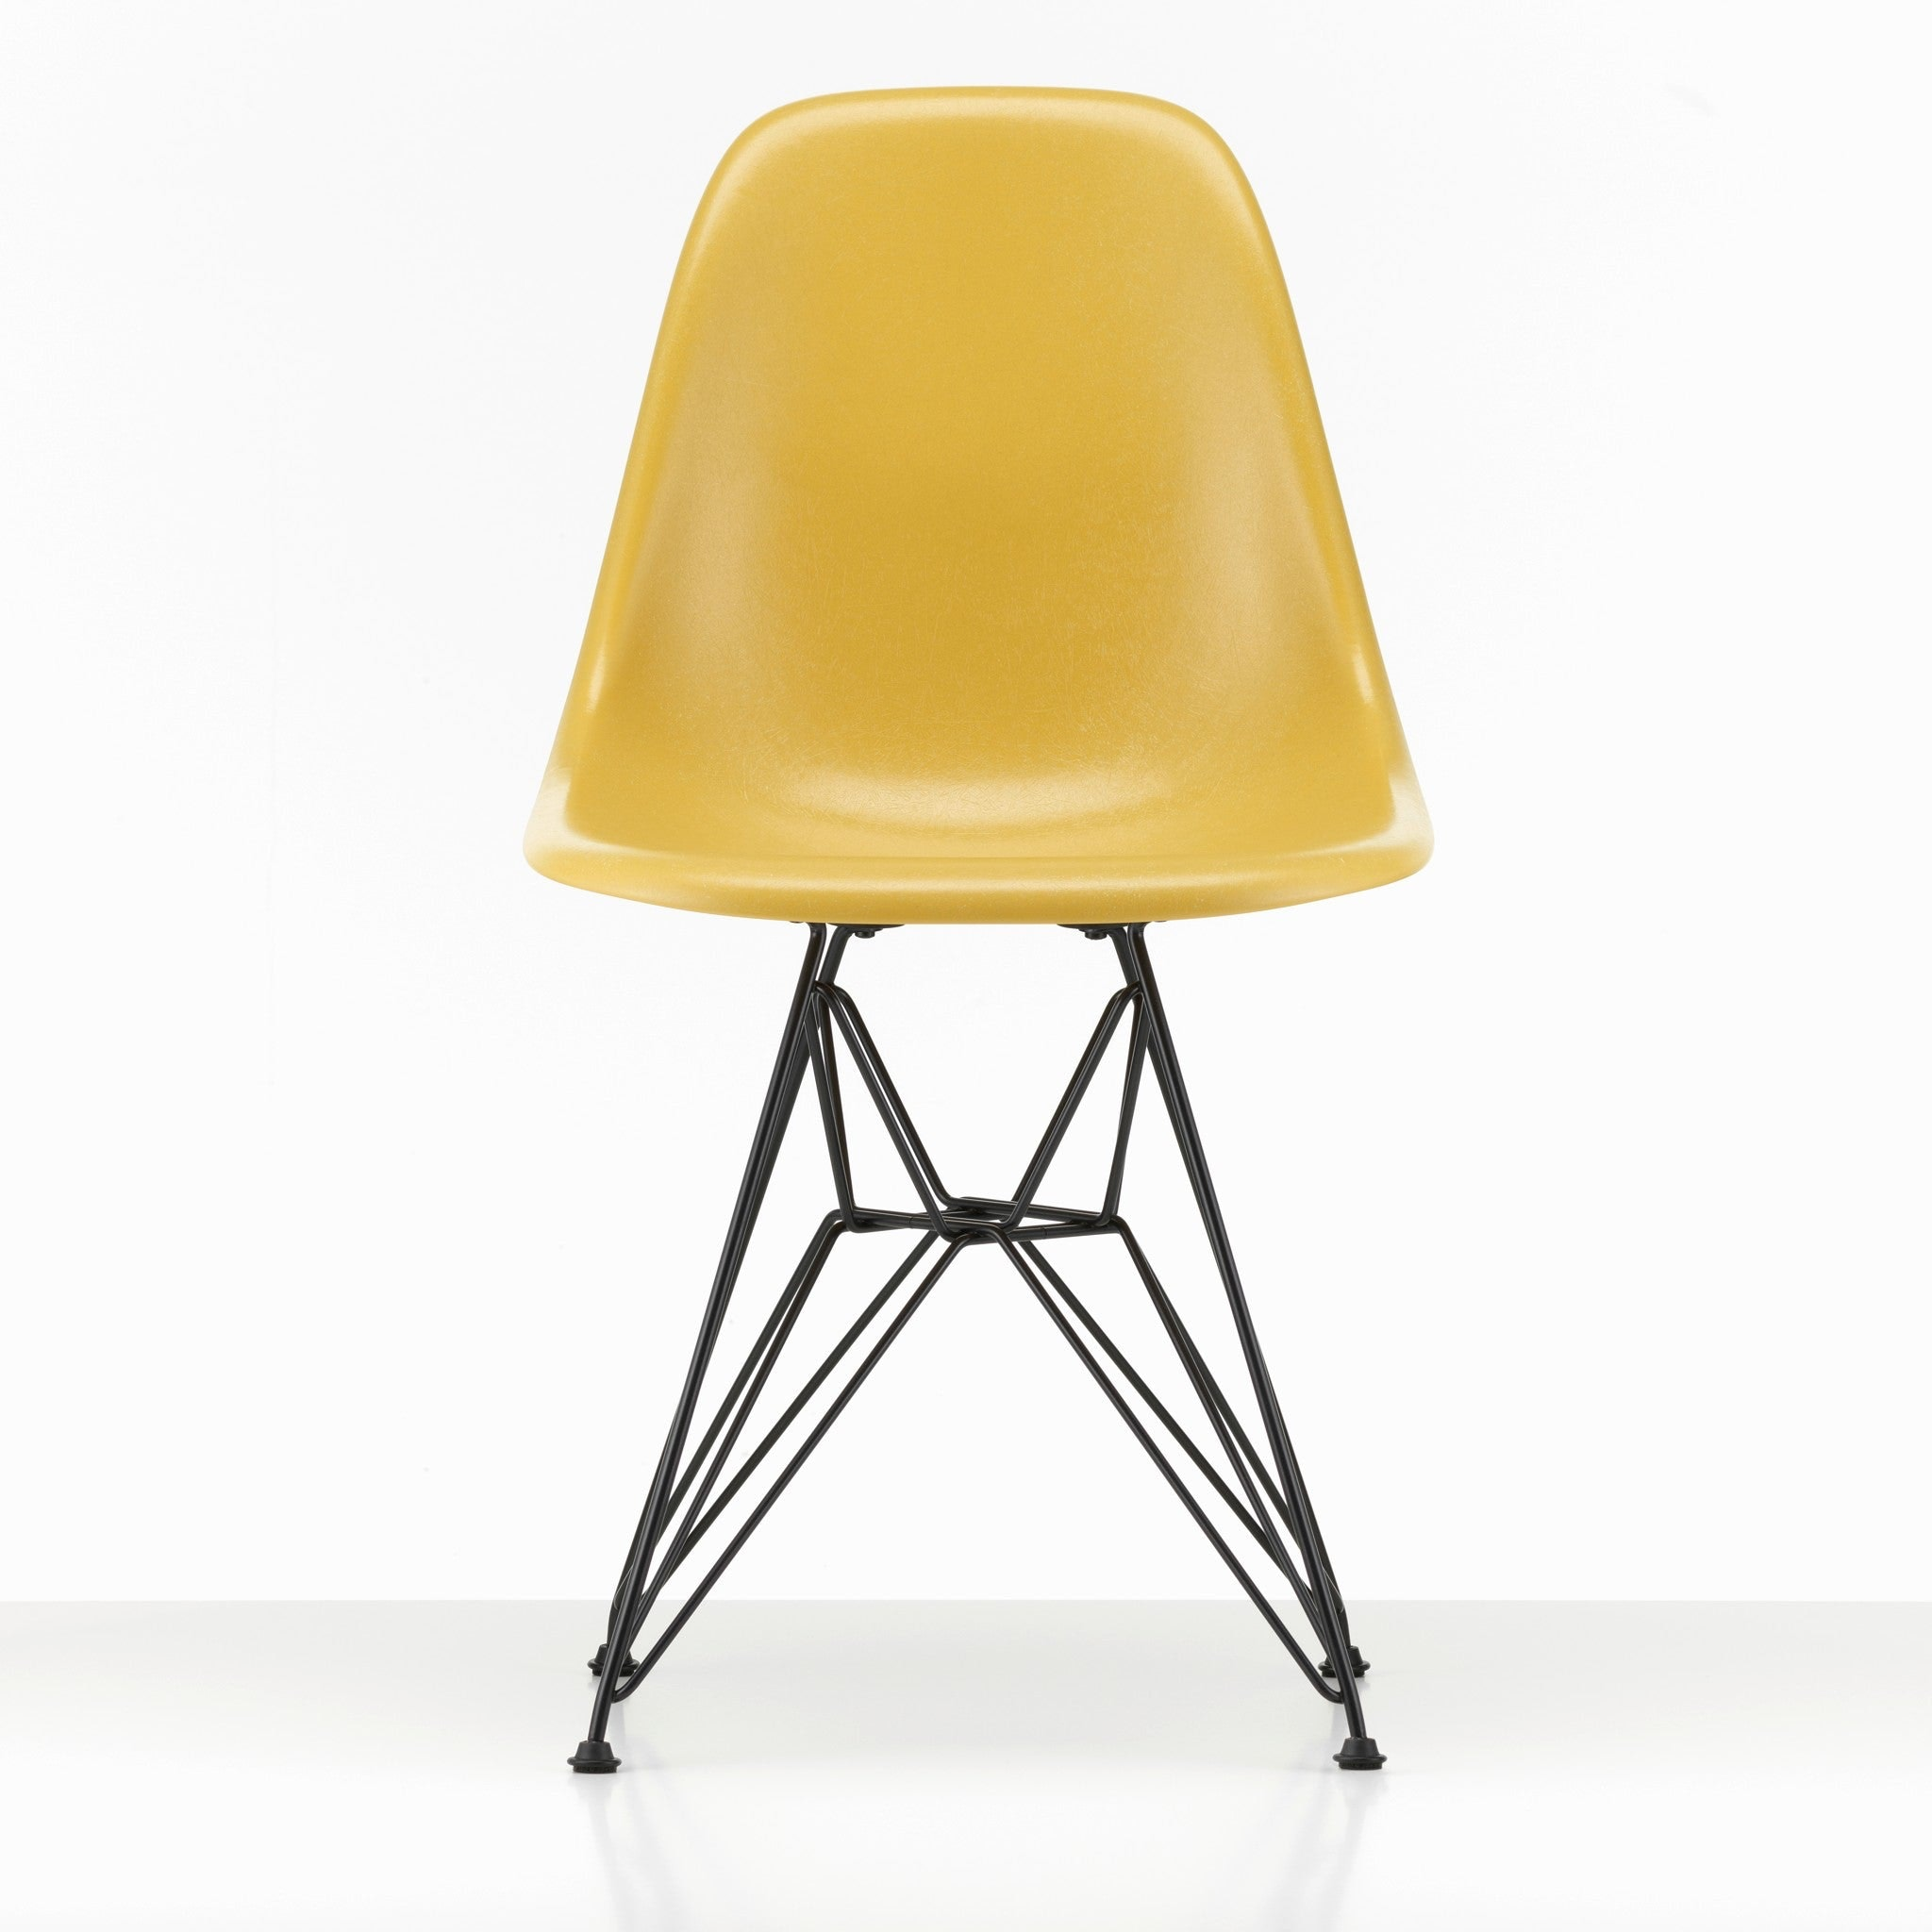 Eames Fiberglass Chair DSR by Vitra